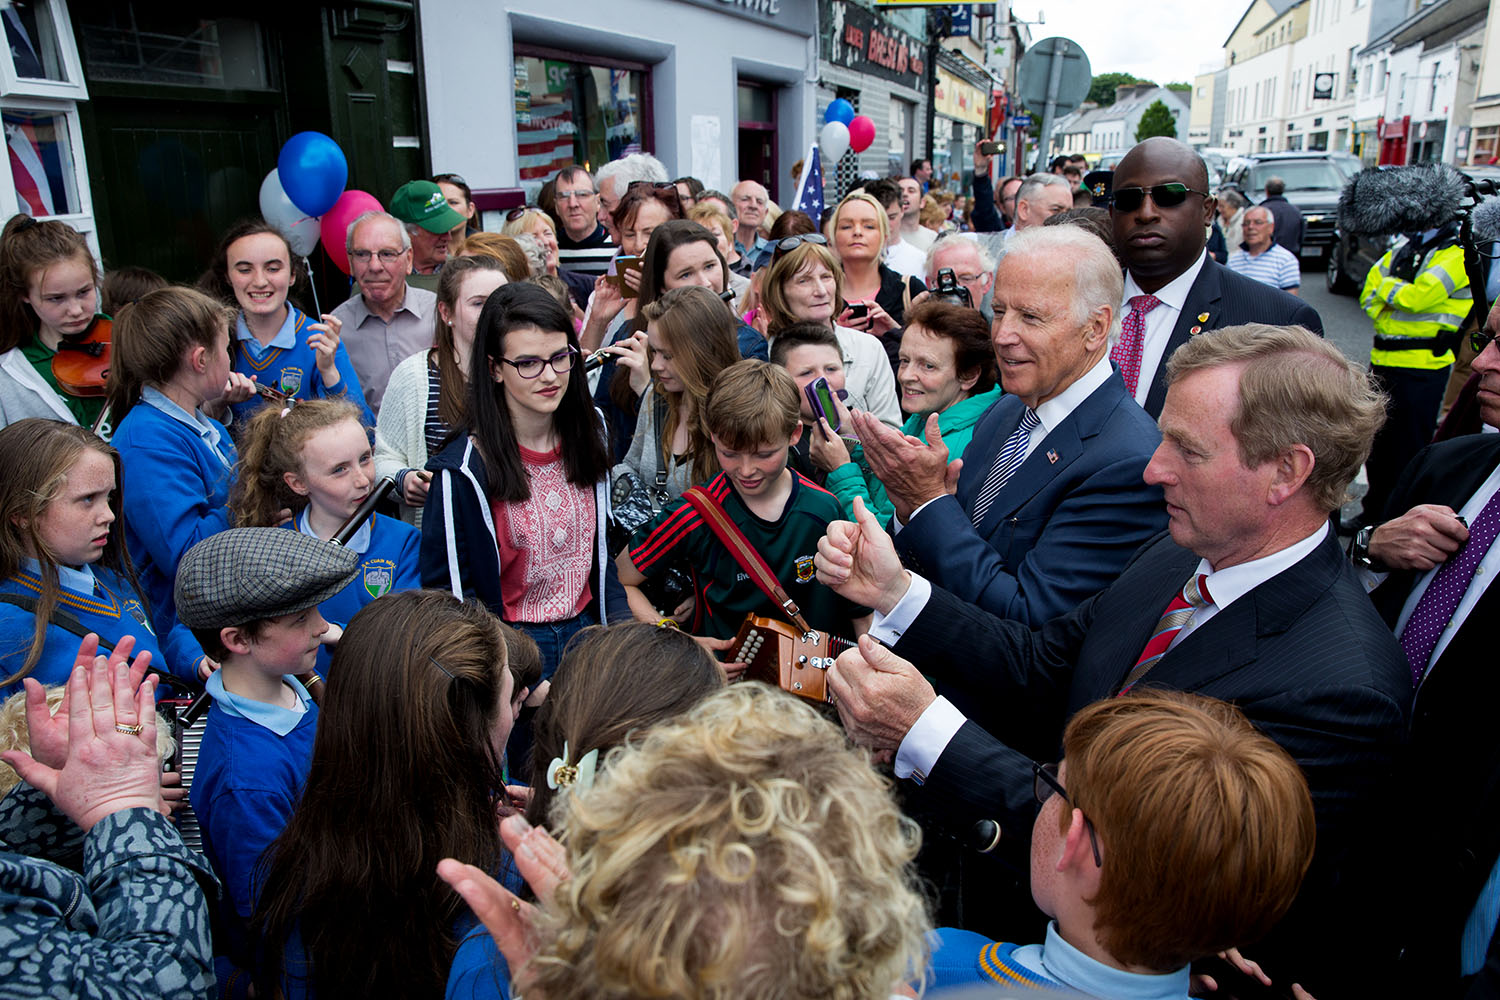 Vice President Joe Biden and Taoiseach Enda Kenny shake hands with people in Ballina, Ireland, June 22, 2016. (Official White House Photo by David Lienemann)